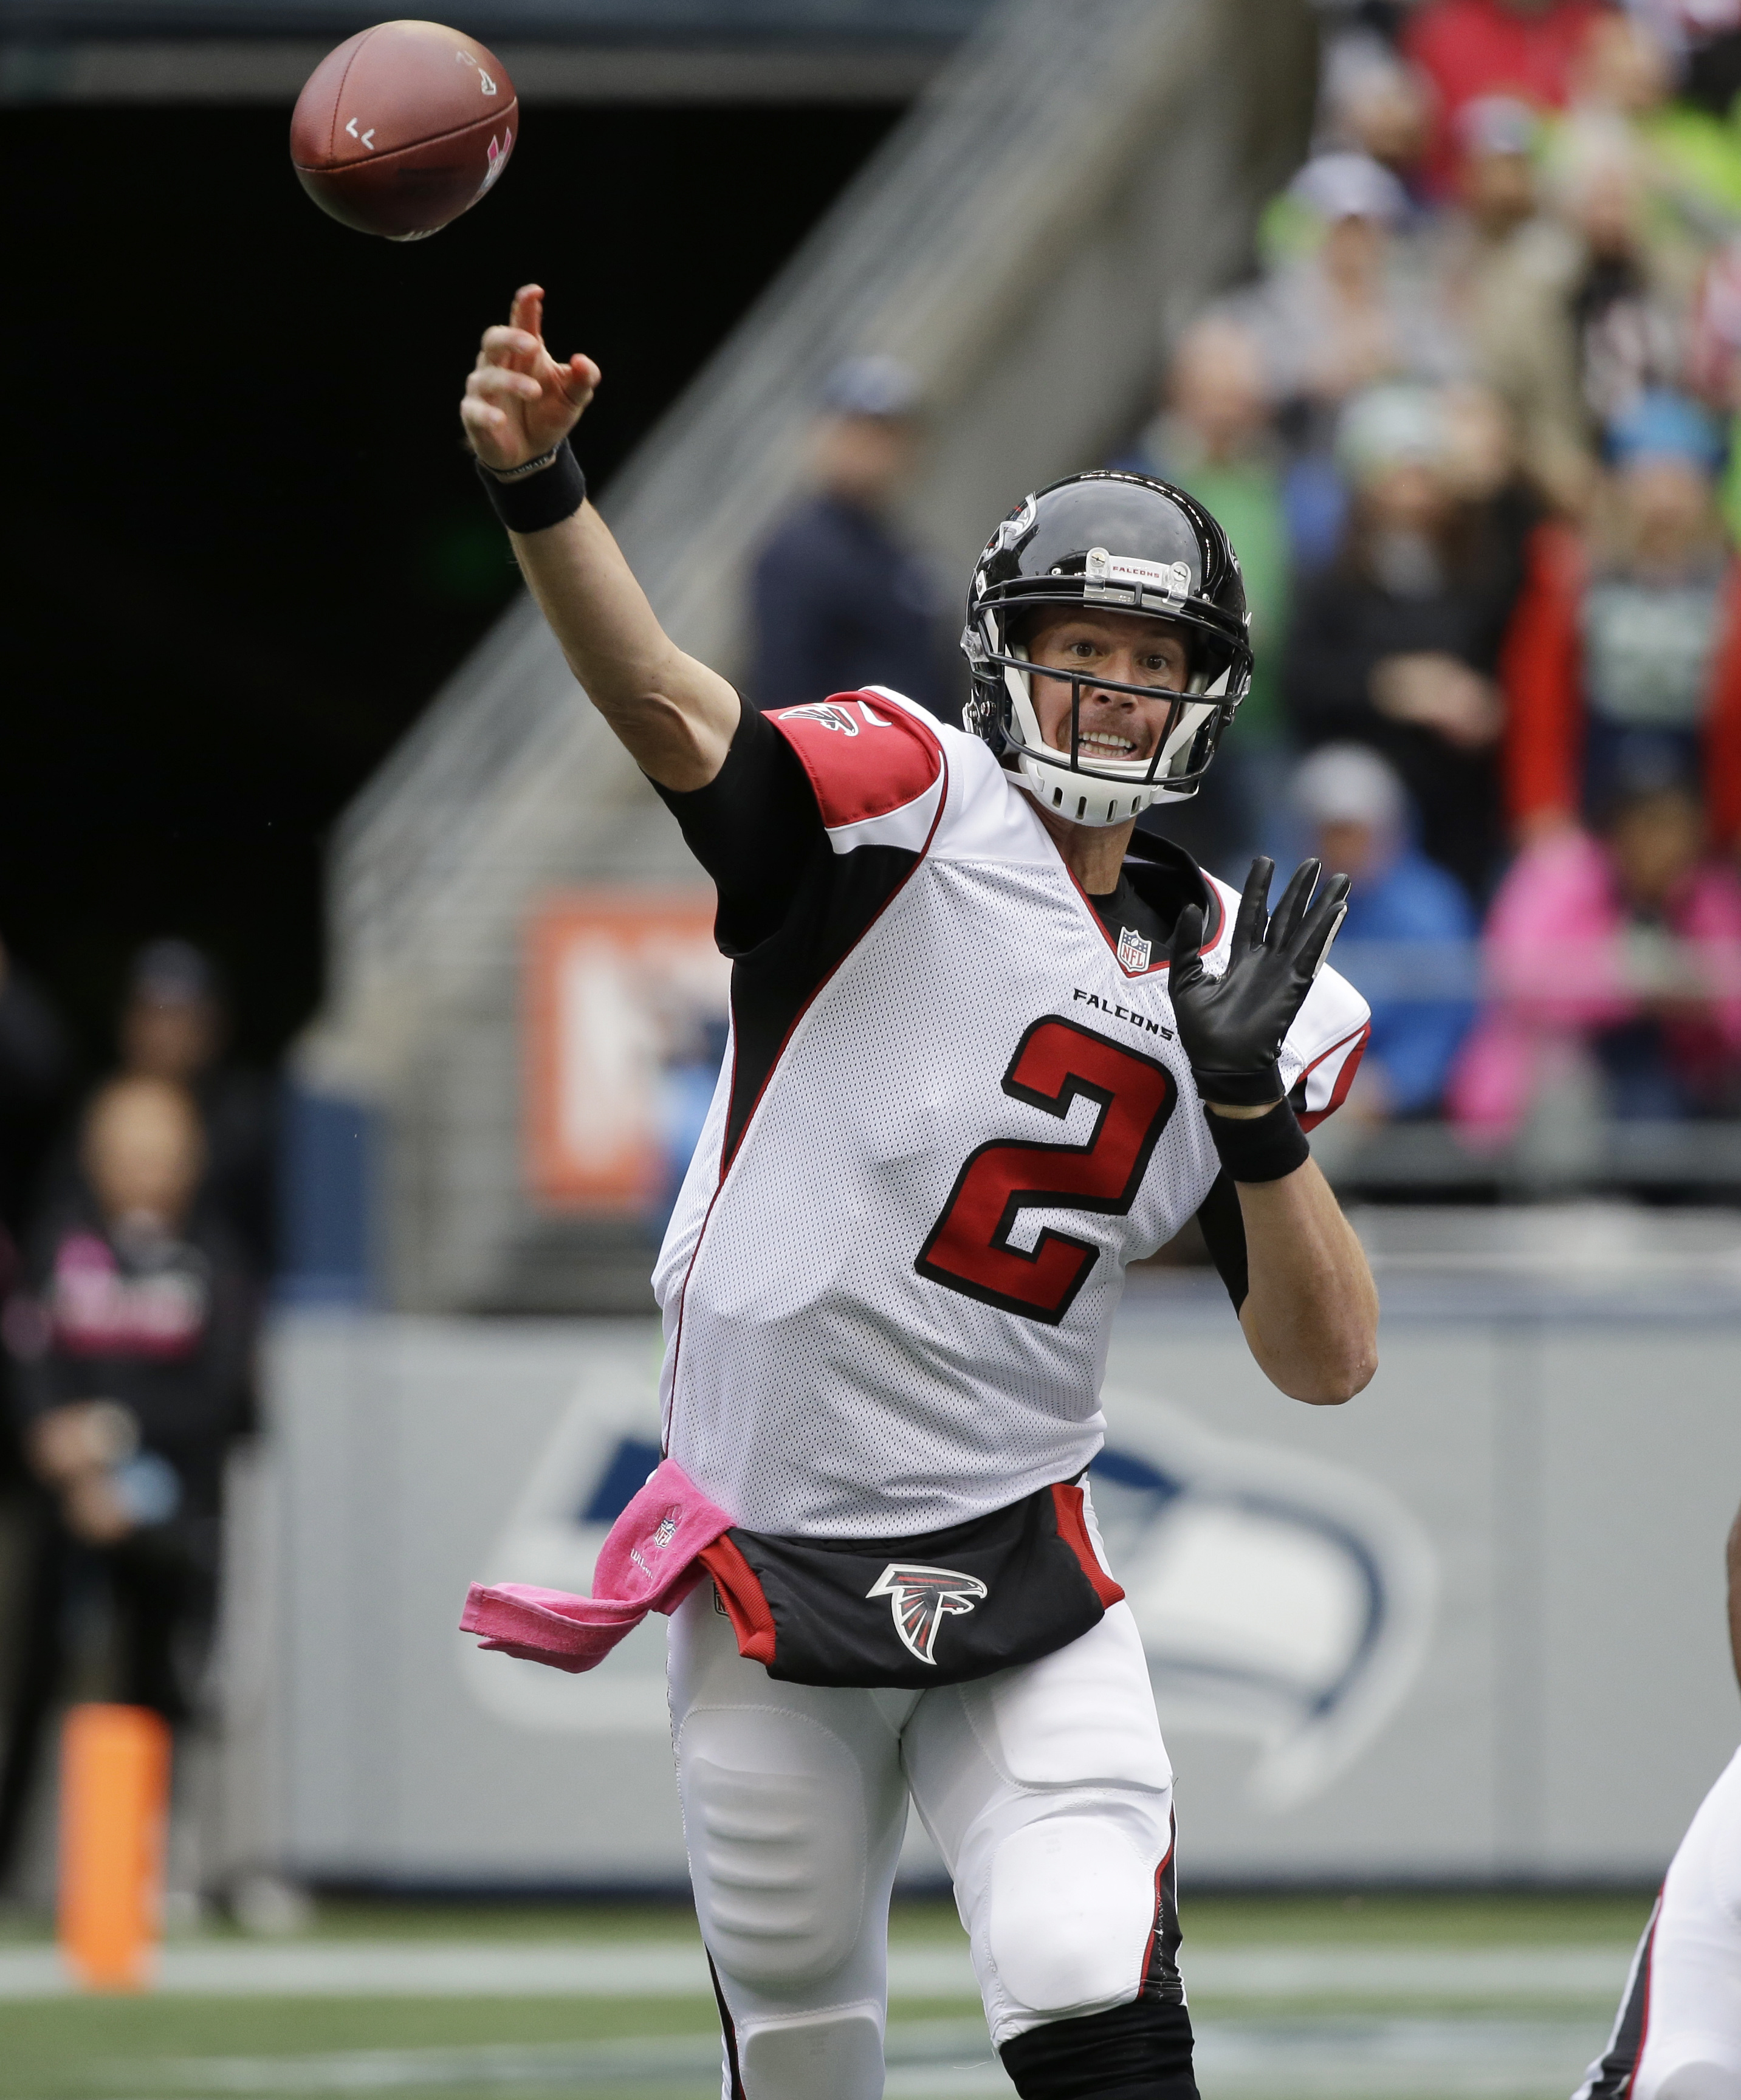 FILE - In this Oct. 16, 2016, file photo, Atlanta Falcons quarterback Matt Ryan passes against the Seattle Seahawks in the first half of an NFL football game, in Seattle.One year ago, there were questions about Matt Ryan's arm strength, sharp decline in t